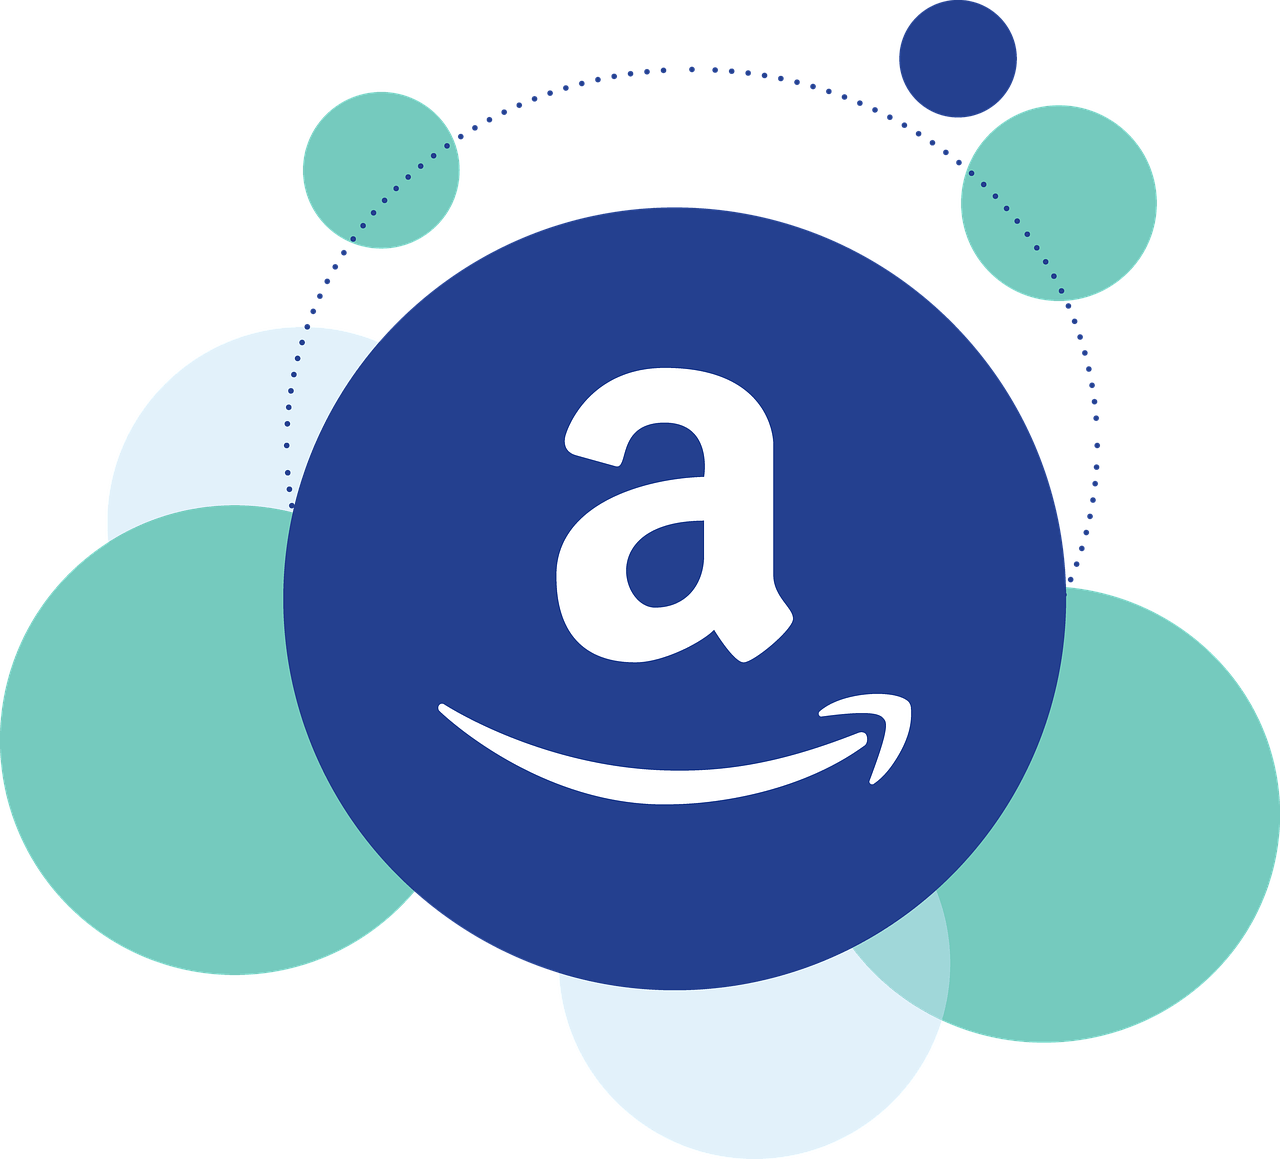 Amazon acquires online pharmacy. Worry clipart medication management